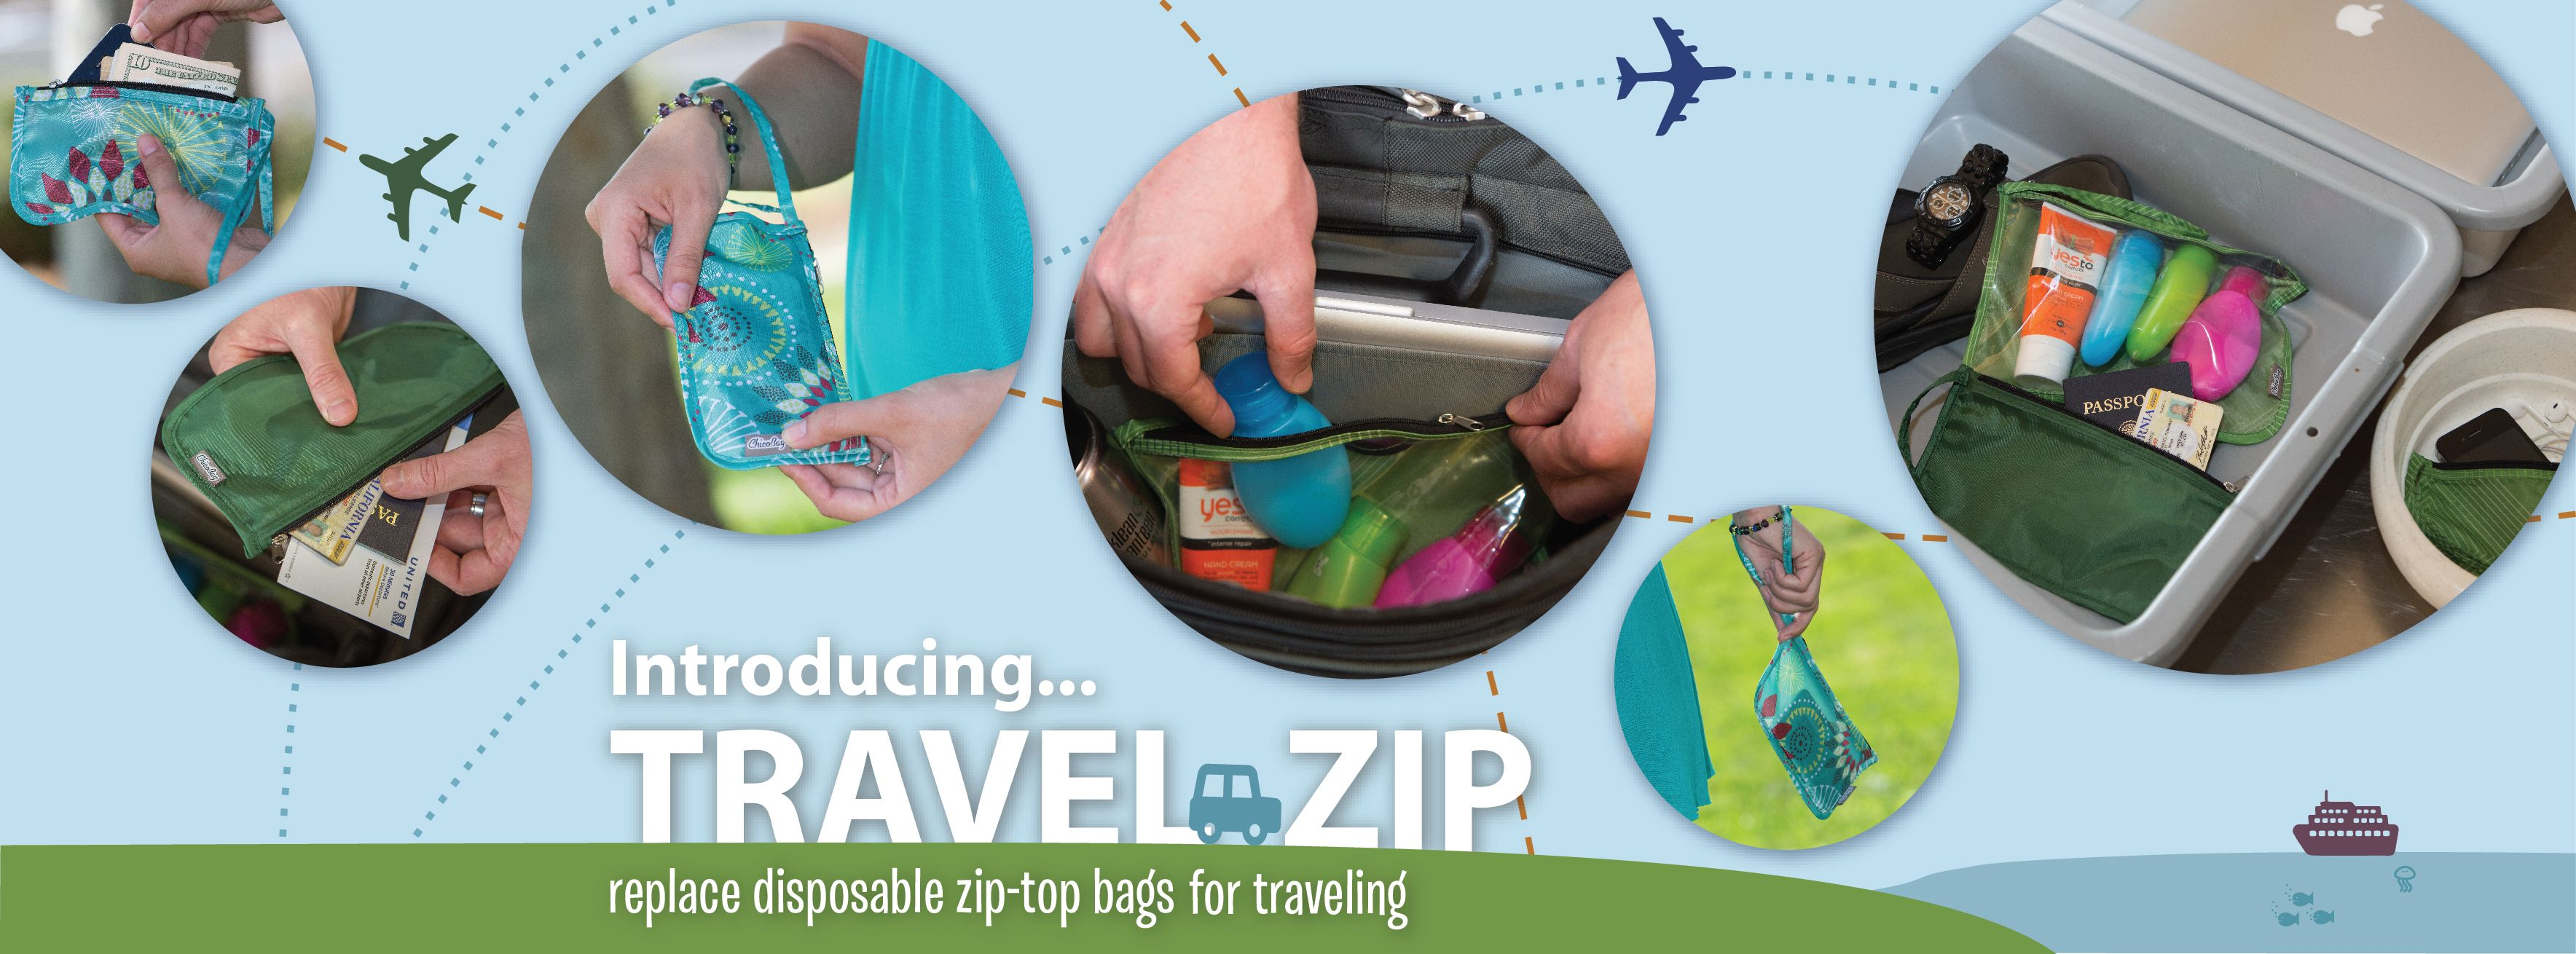 Introducing The Travel Zip Whether You Re Traveling Across The